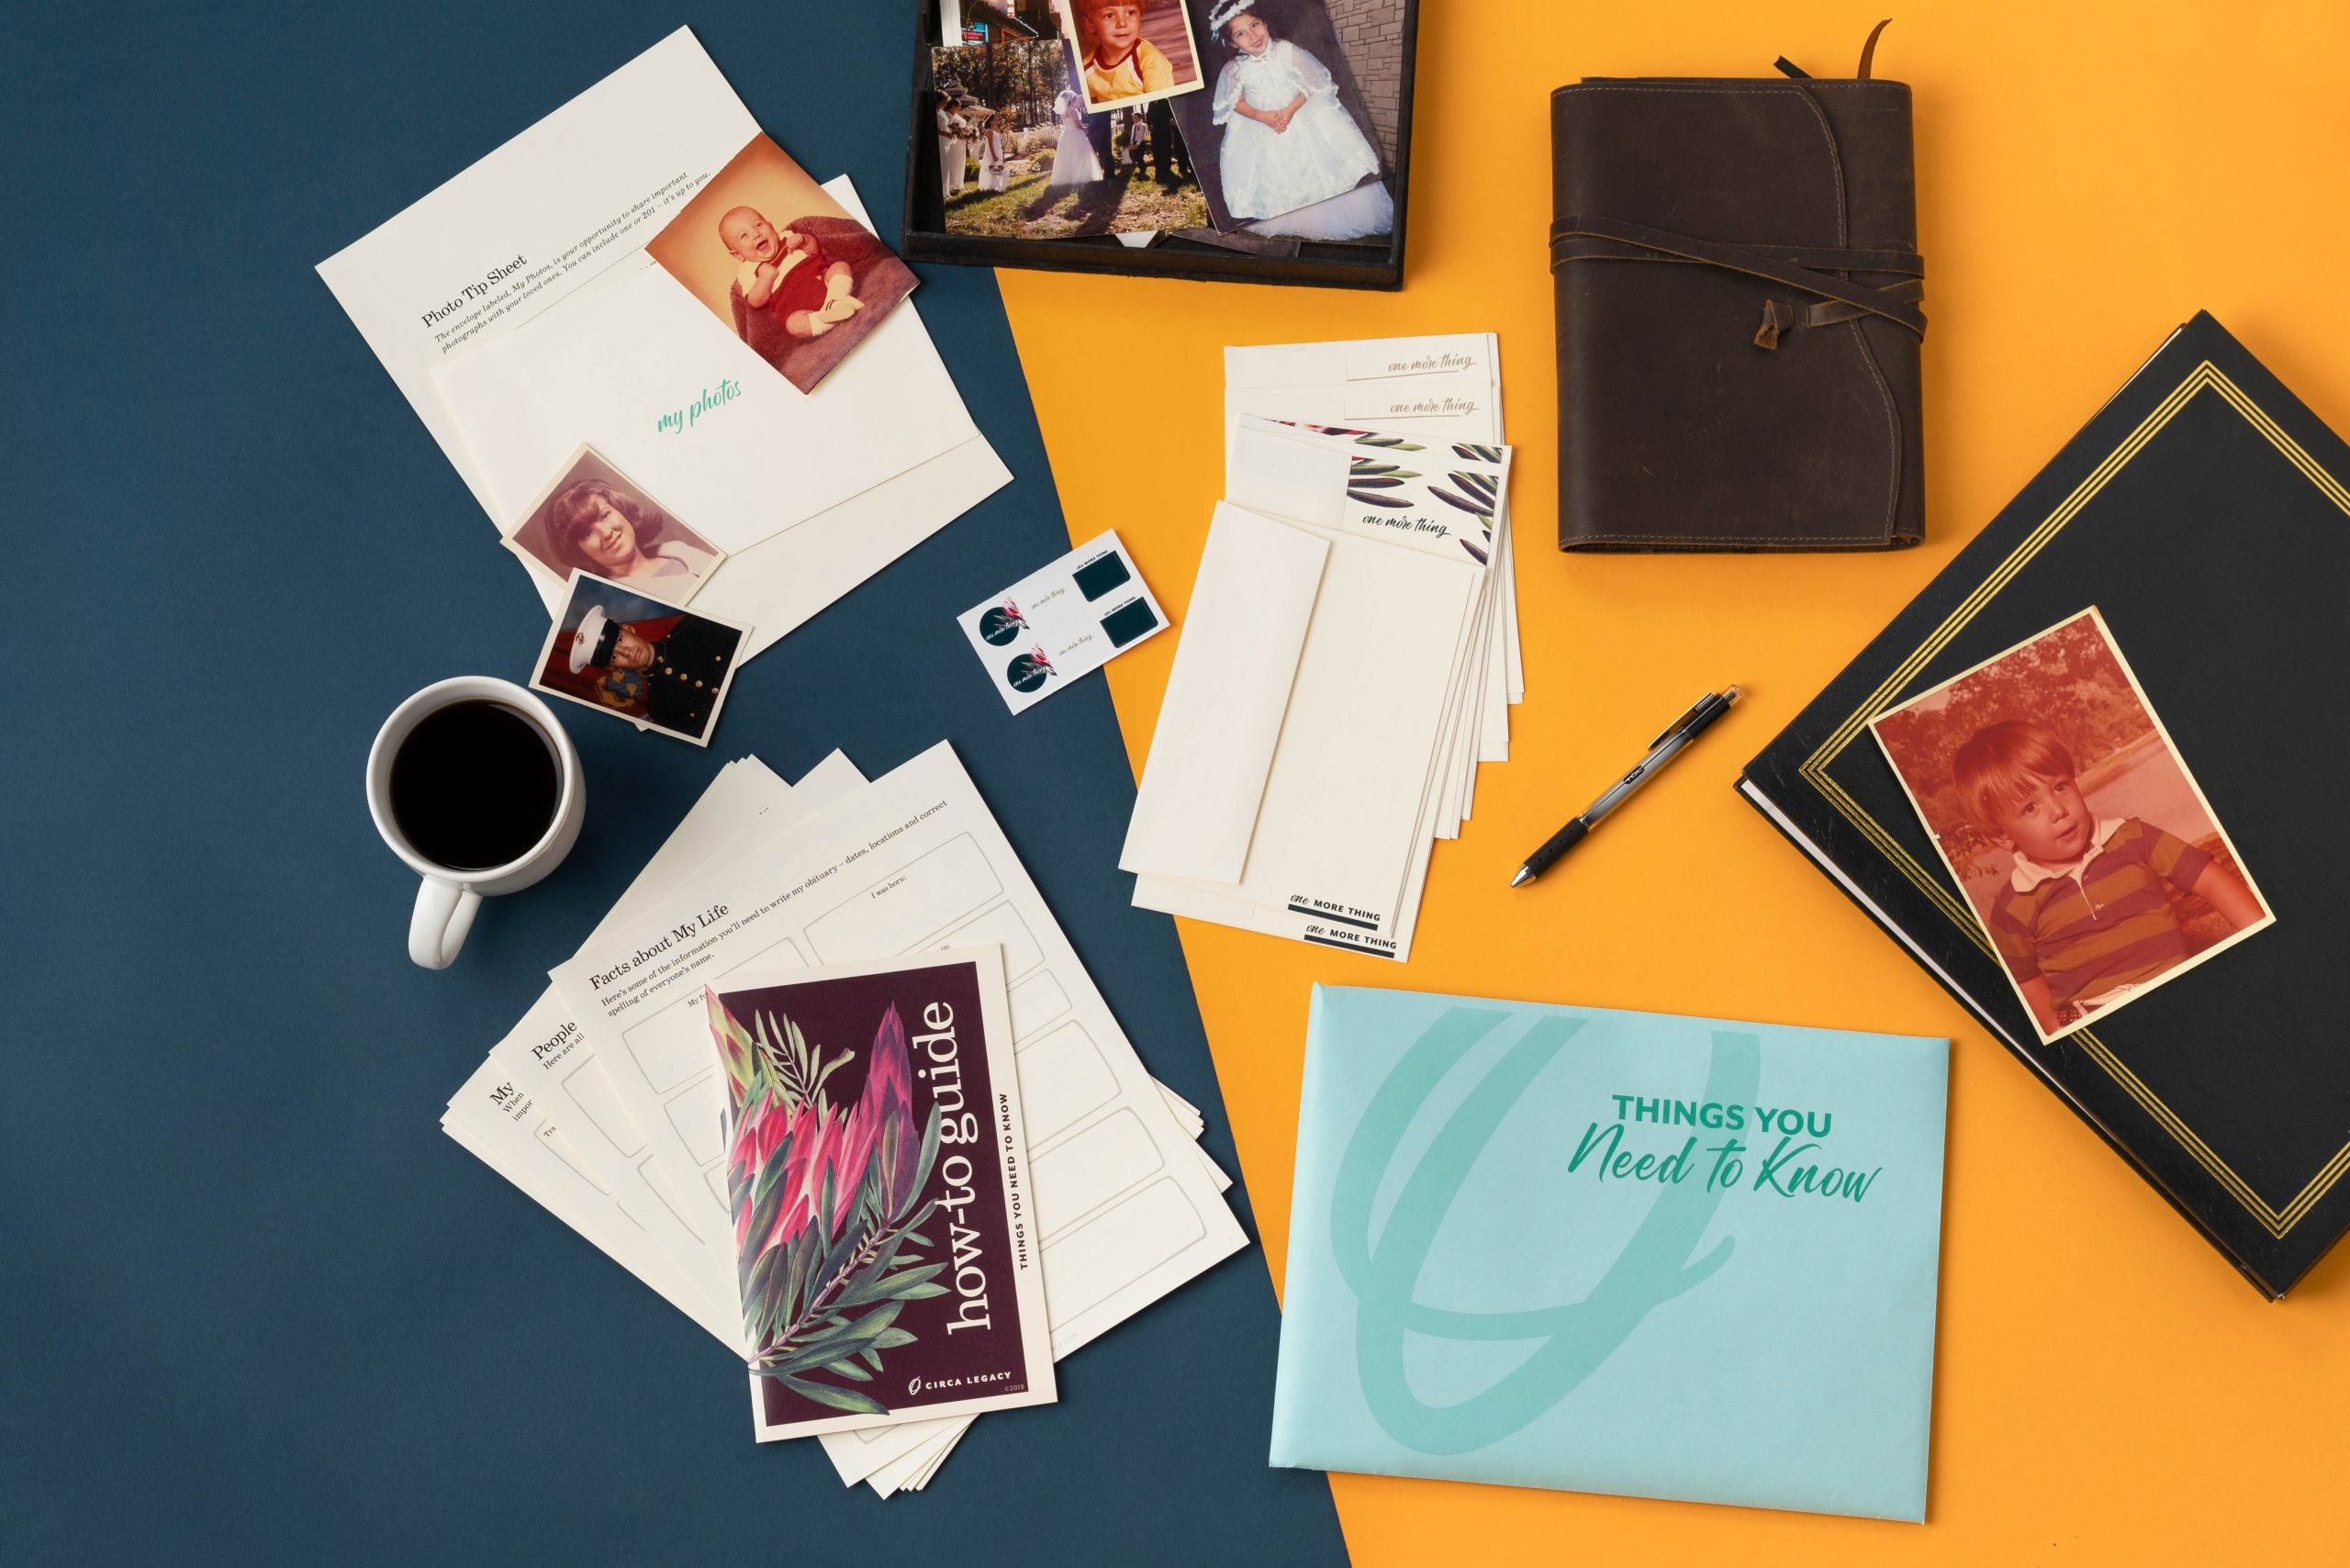 Things You Need to Know Kit by Circa Legacy contents with photographs, journal, photo album, and coffee mug.